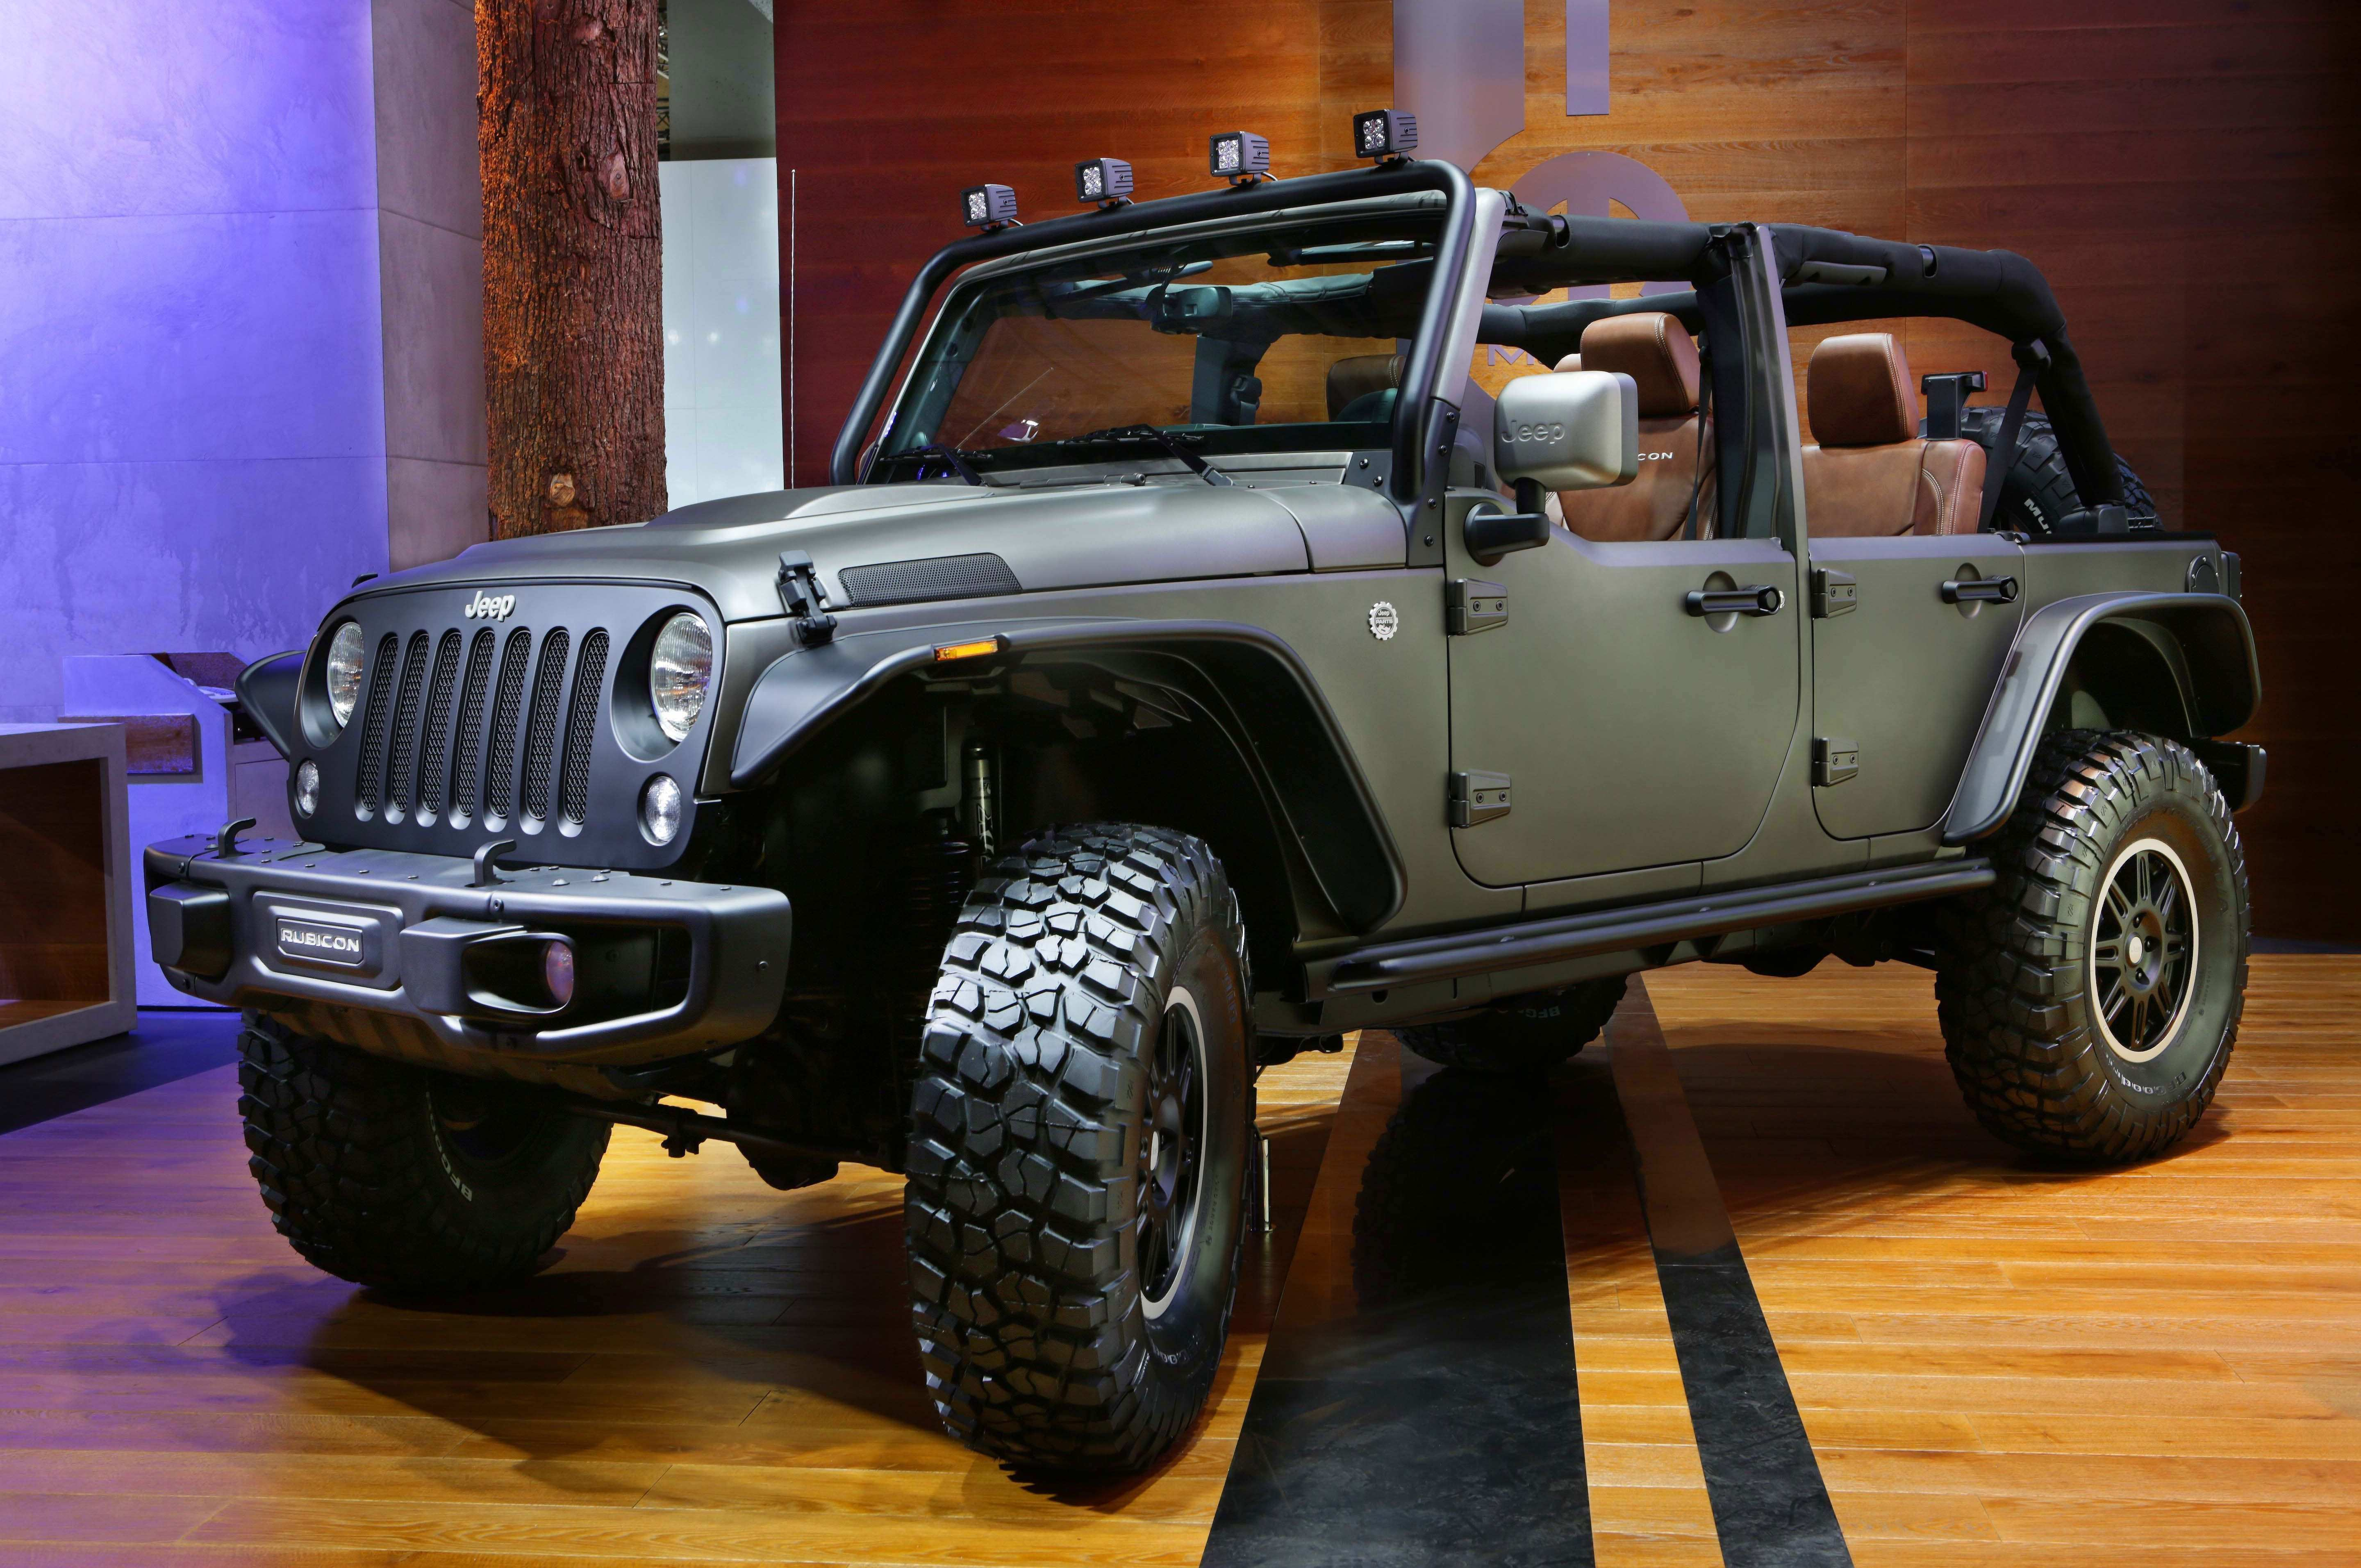 81 All New 2019 Jeep Exterior Colors Price Design And Review